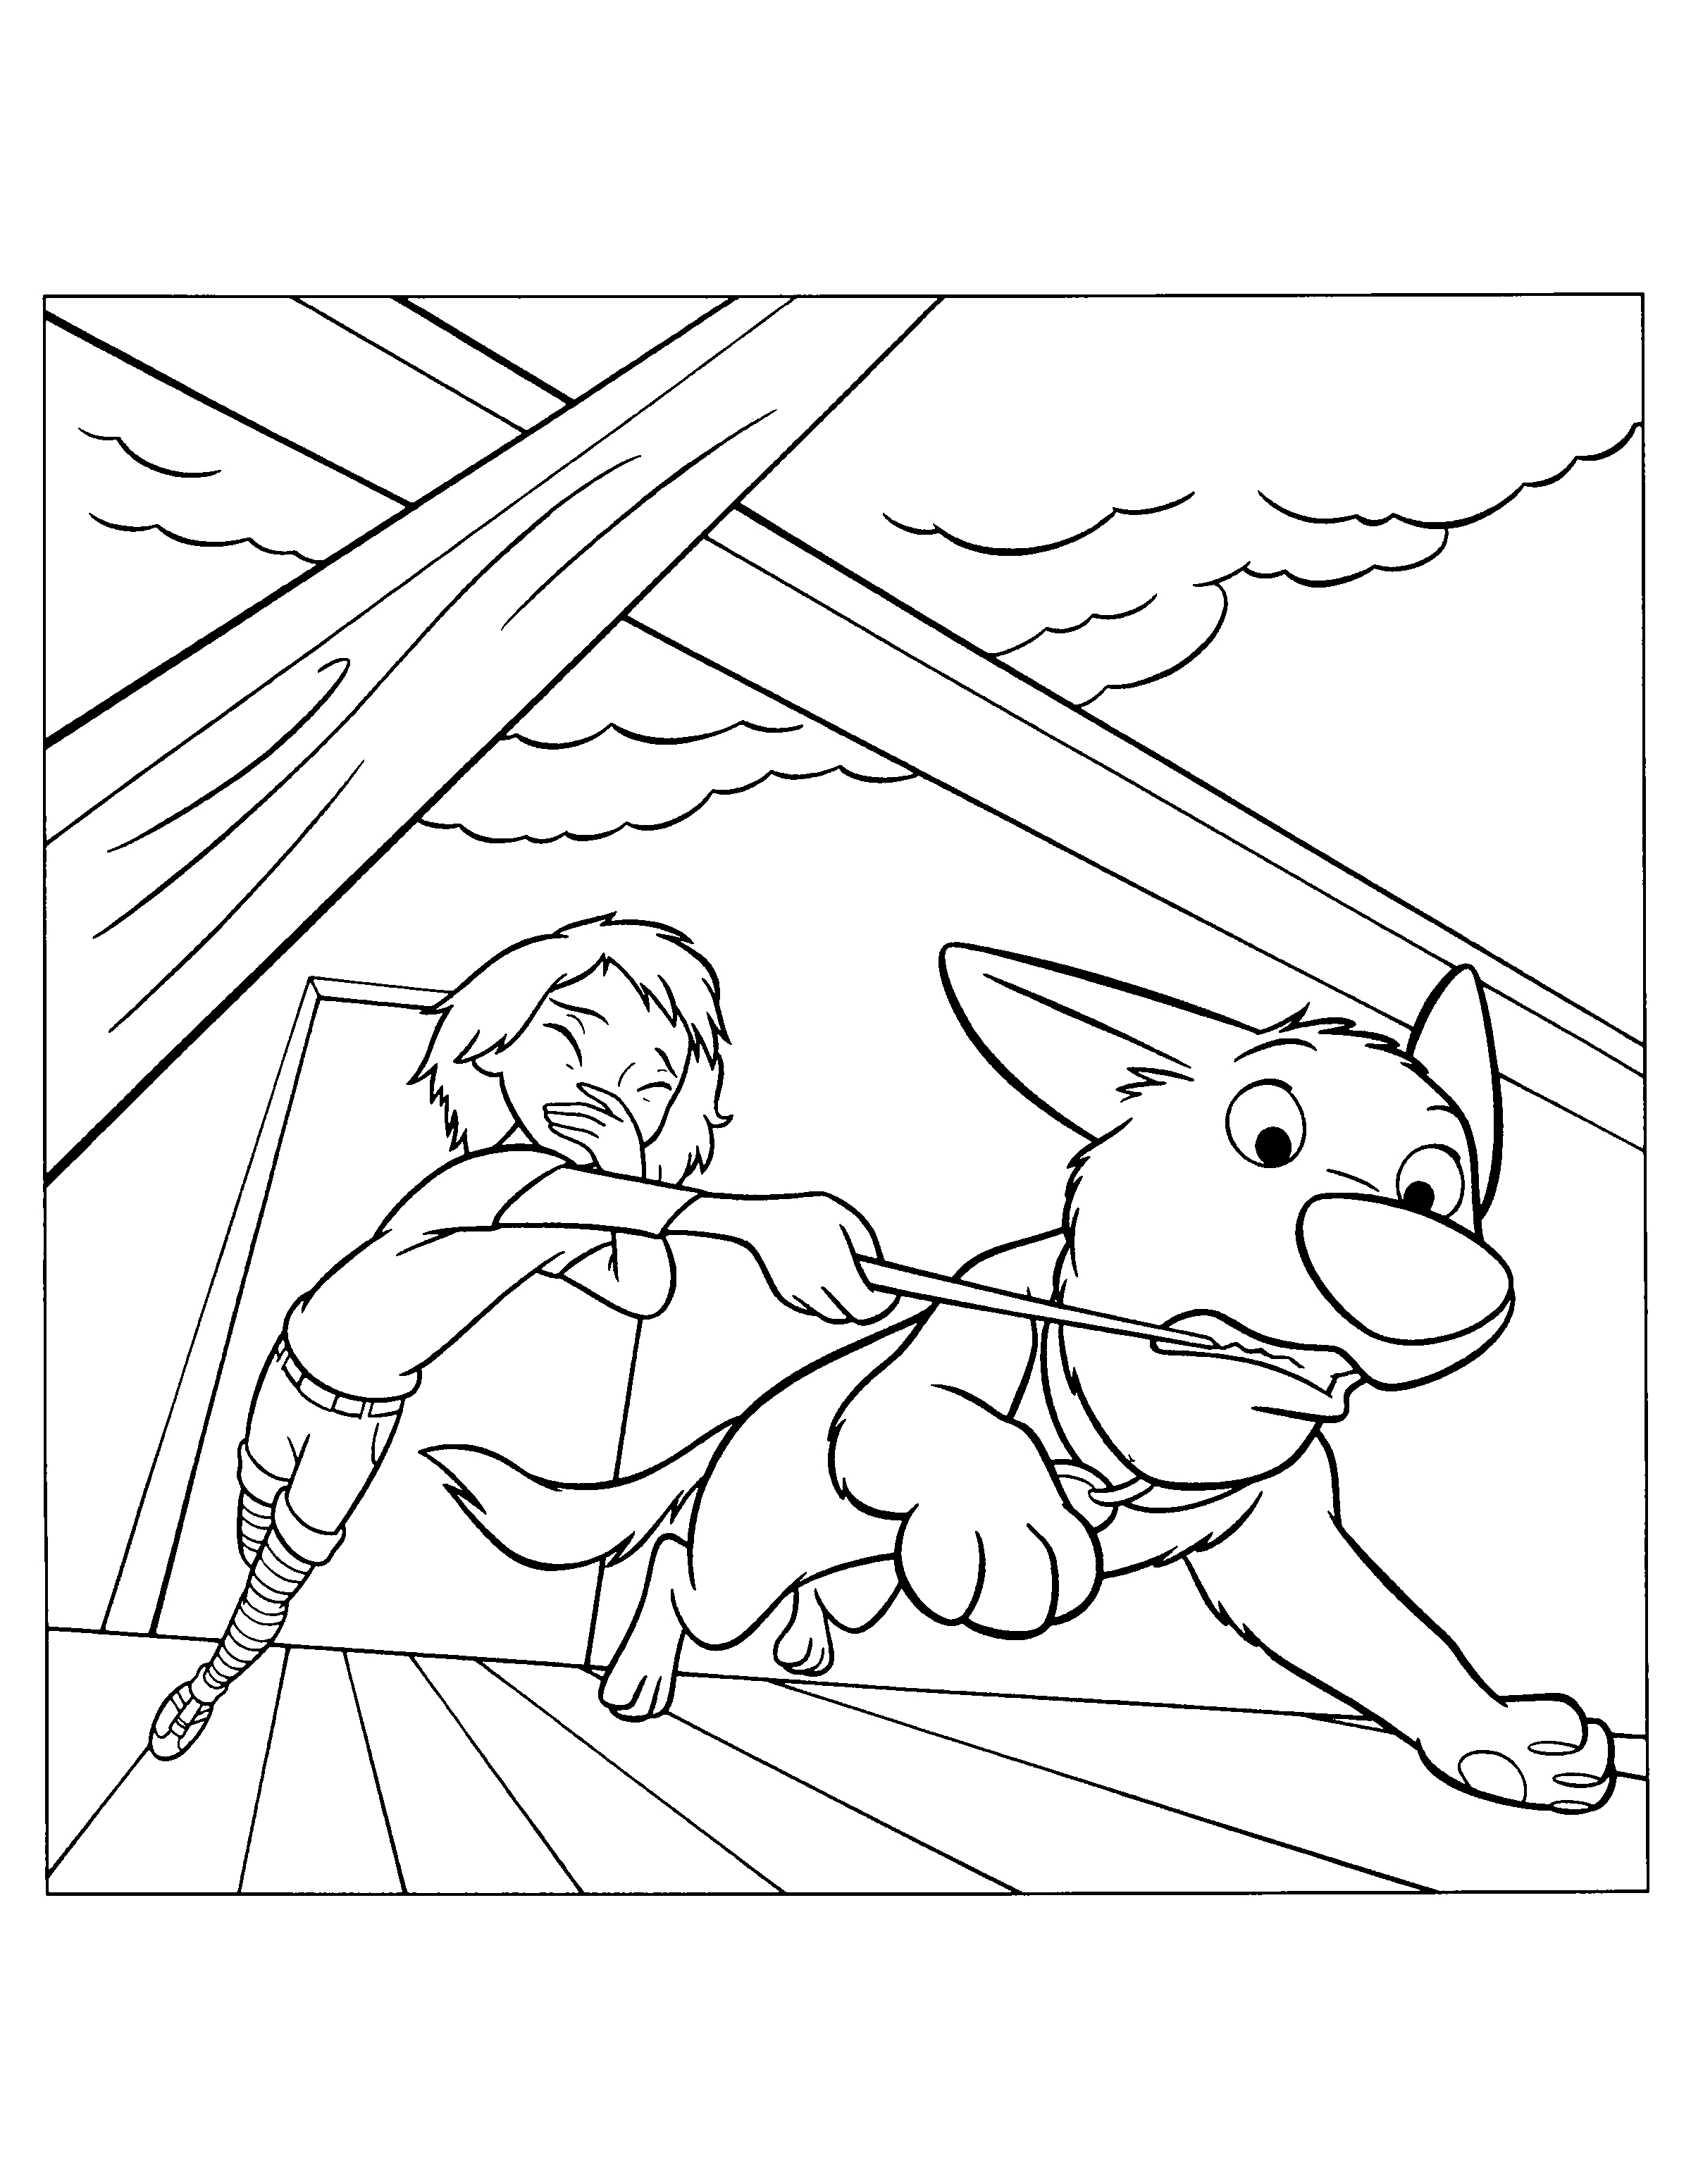 23 Bolt Coloring Pages Images | FREE COLORING PAGES - Part 2